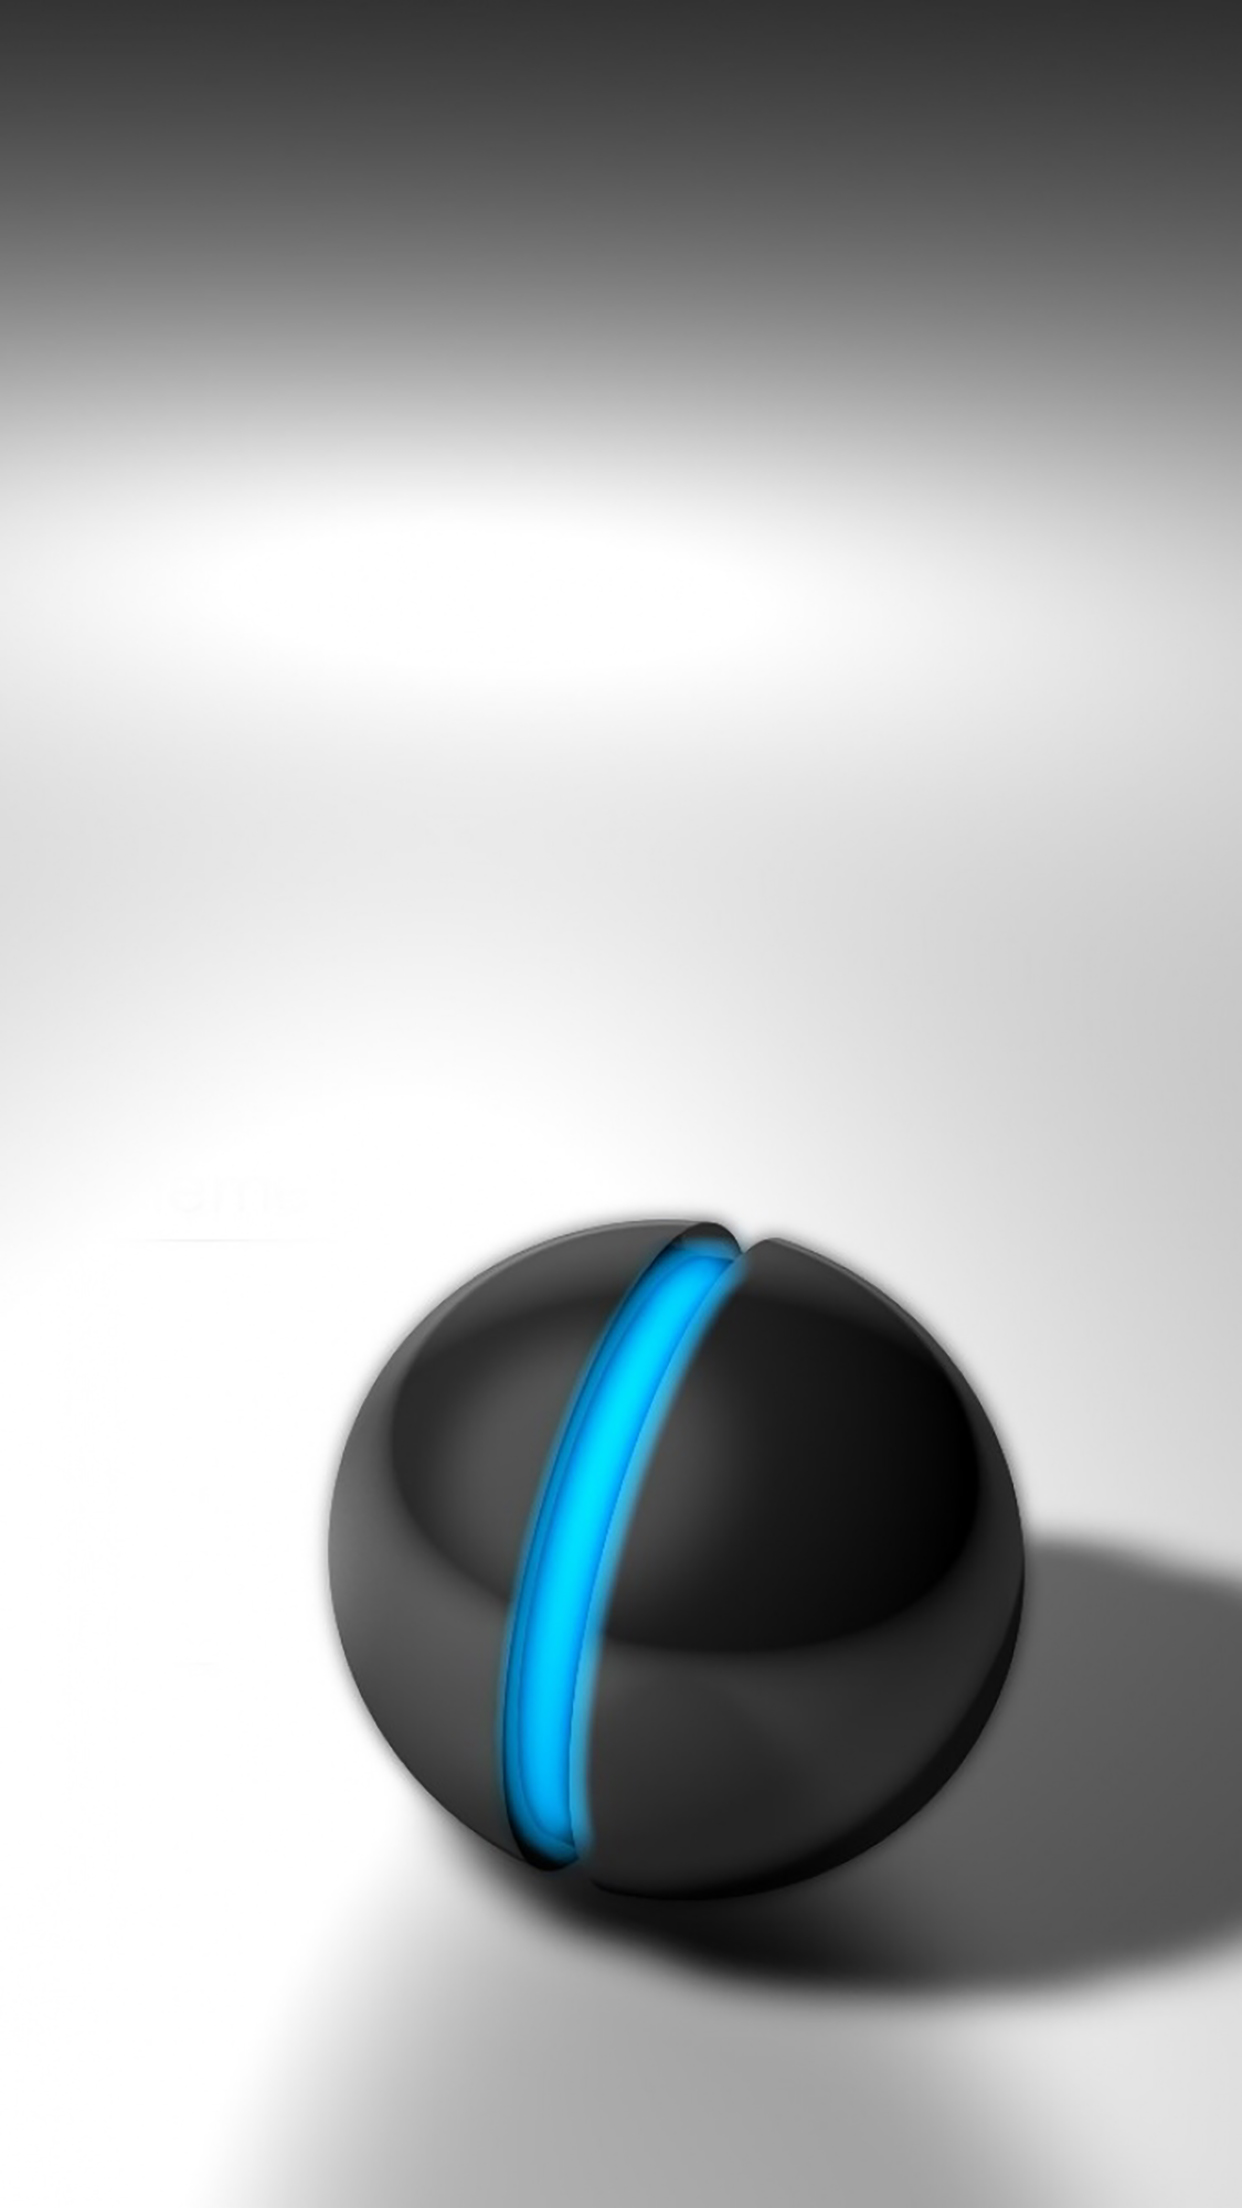 Marbles Black And Bleu 3Wallpapers iPhone Parallax Billes : Black And Bleu